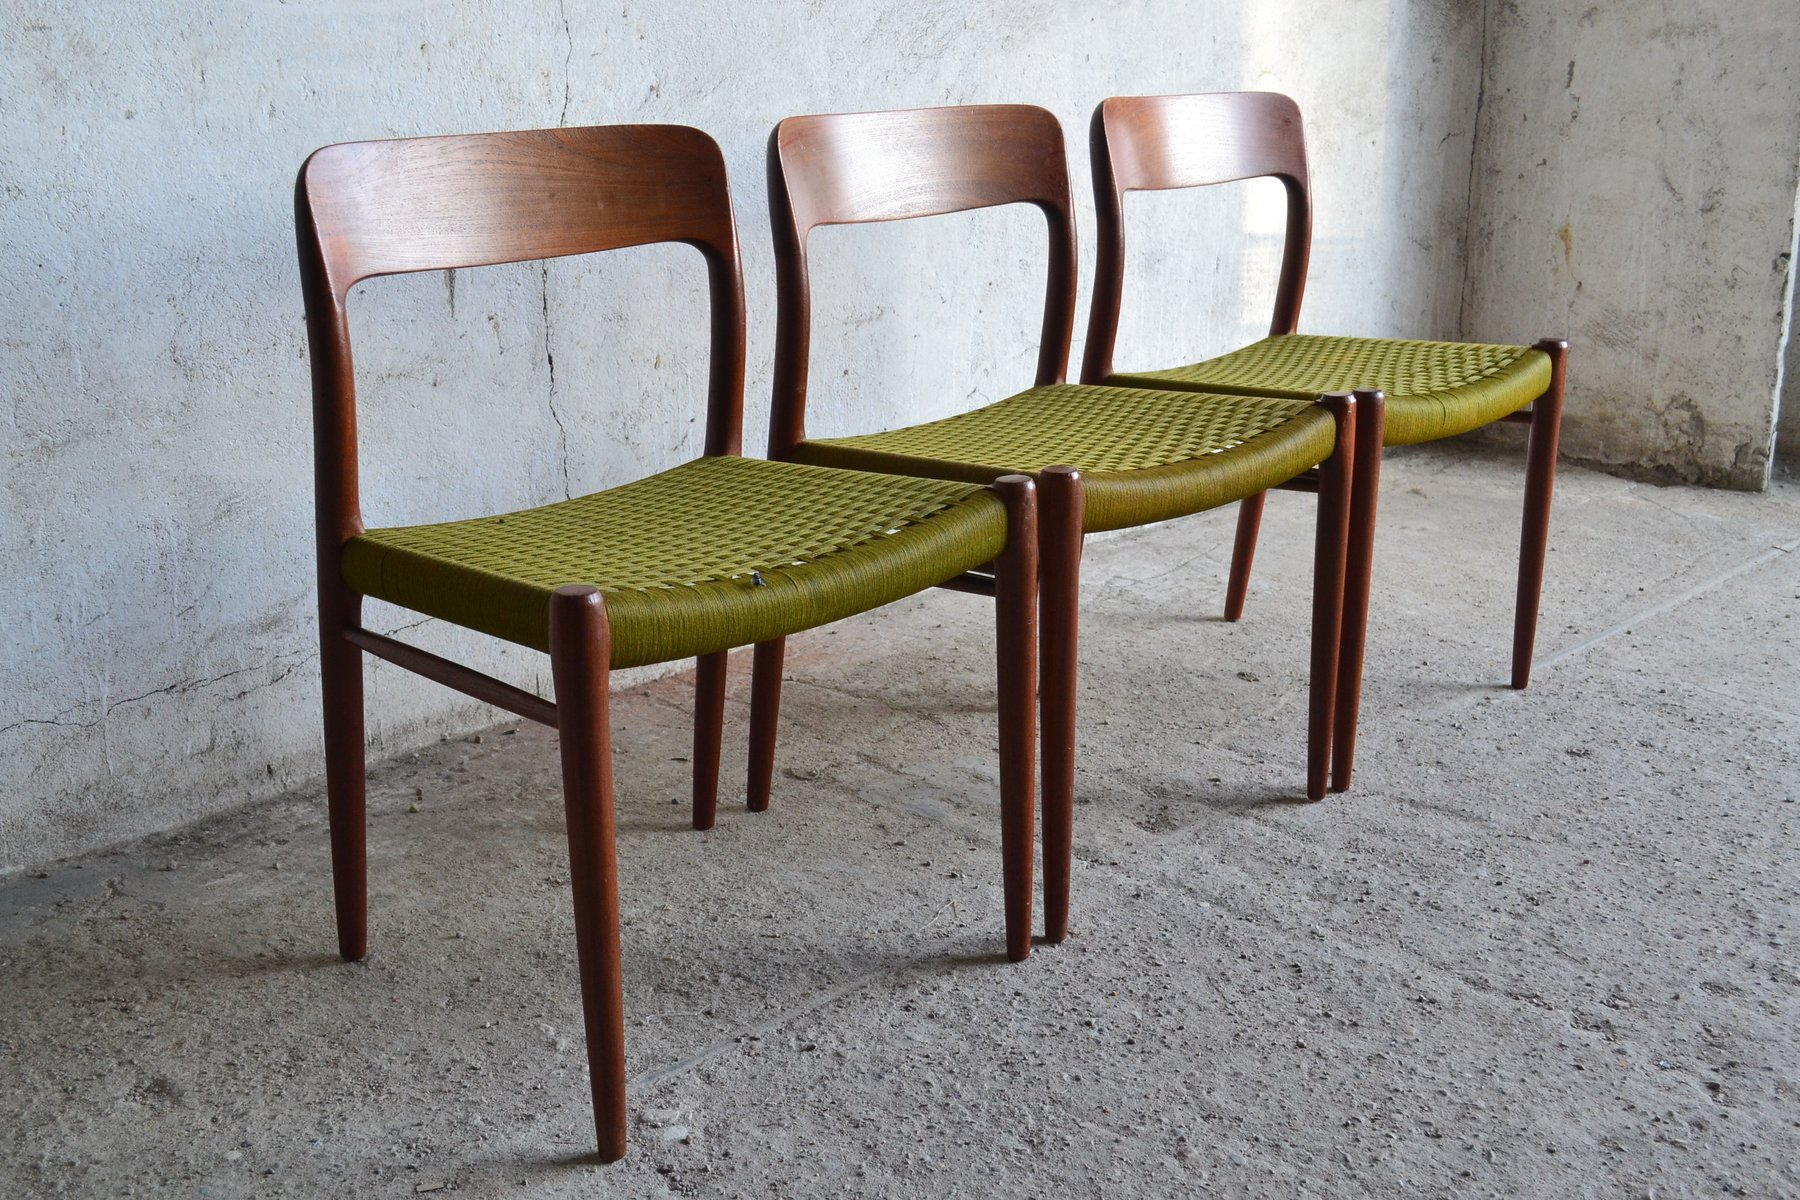 High Quality Danish Chairs By Niels Otto Møller For J. L. Møllers, 1960s, Set Of 3